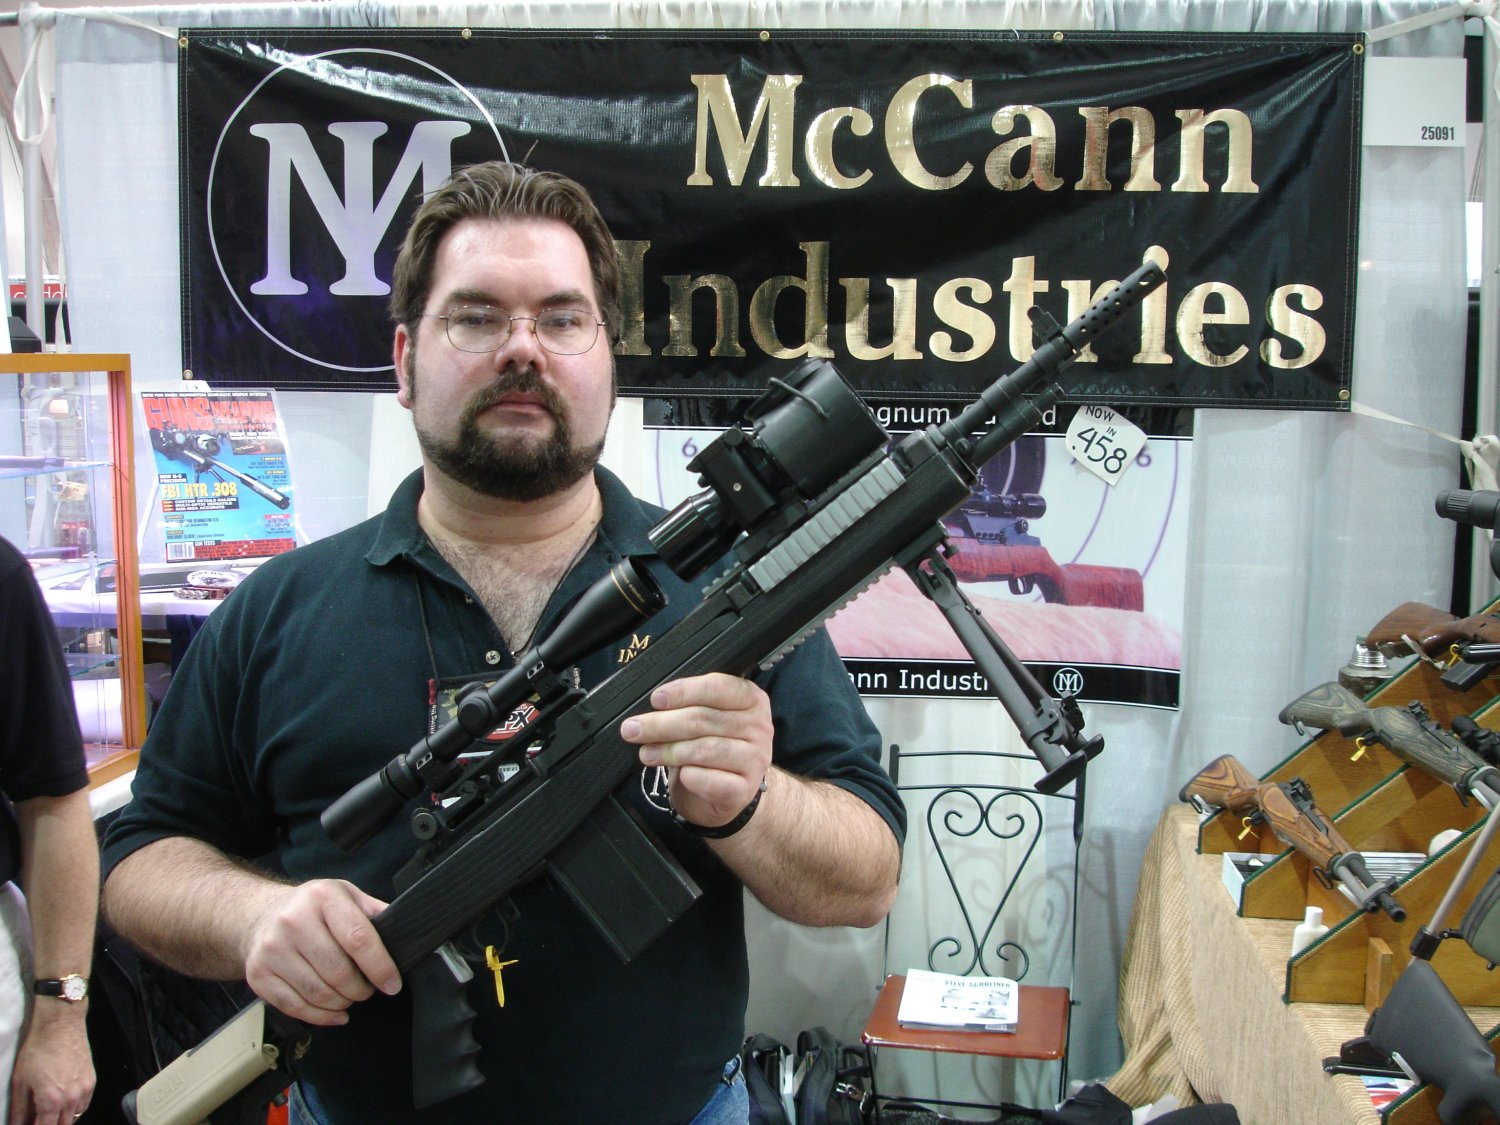 McCannIndustriesCarbonFiberM14Stock 1 SHOT Show 2008 2 03 08 <!  :en  >McCann Industries Ultra Lightweight Carbon Fiber M14/M1A Rifle/Carbine Chassis<!  :  >